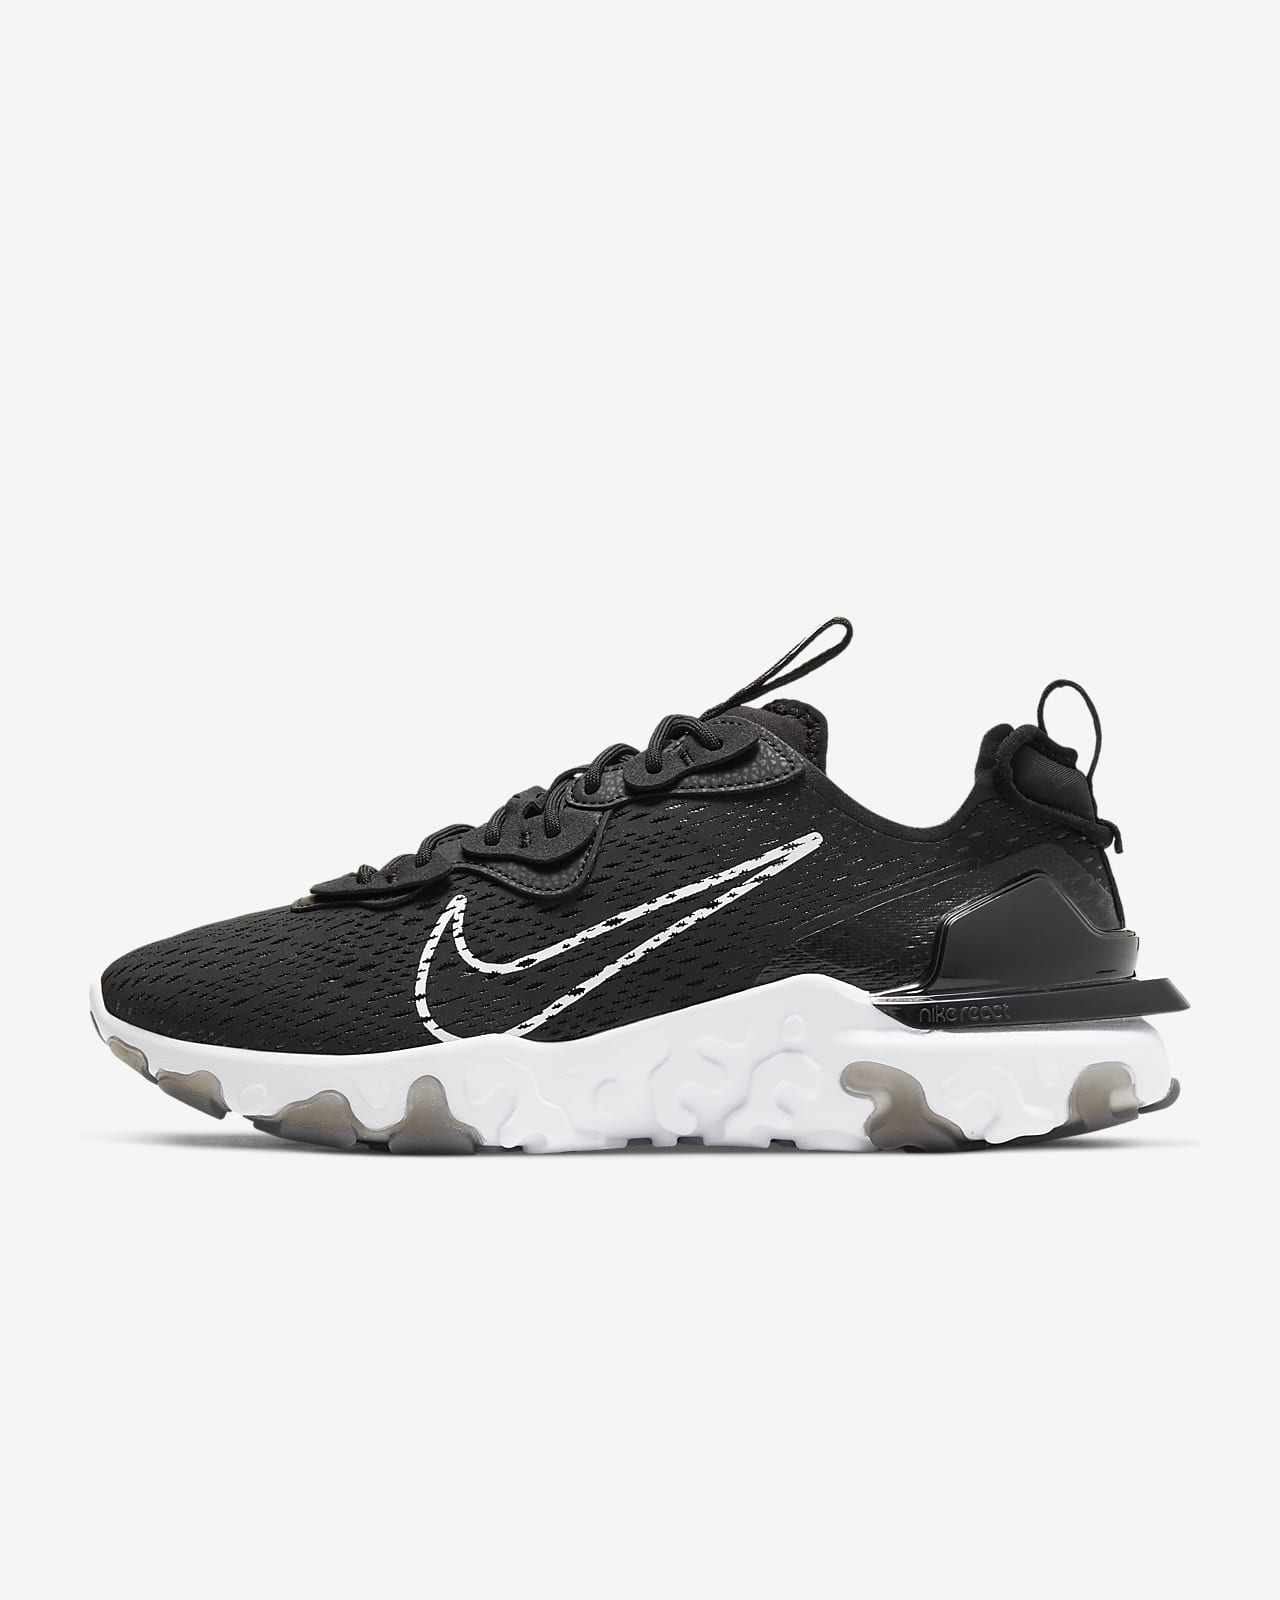 nike homme react vision cheap buy online